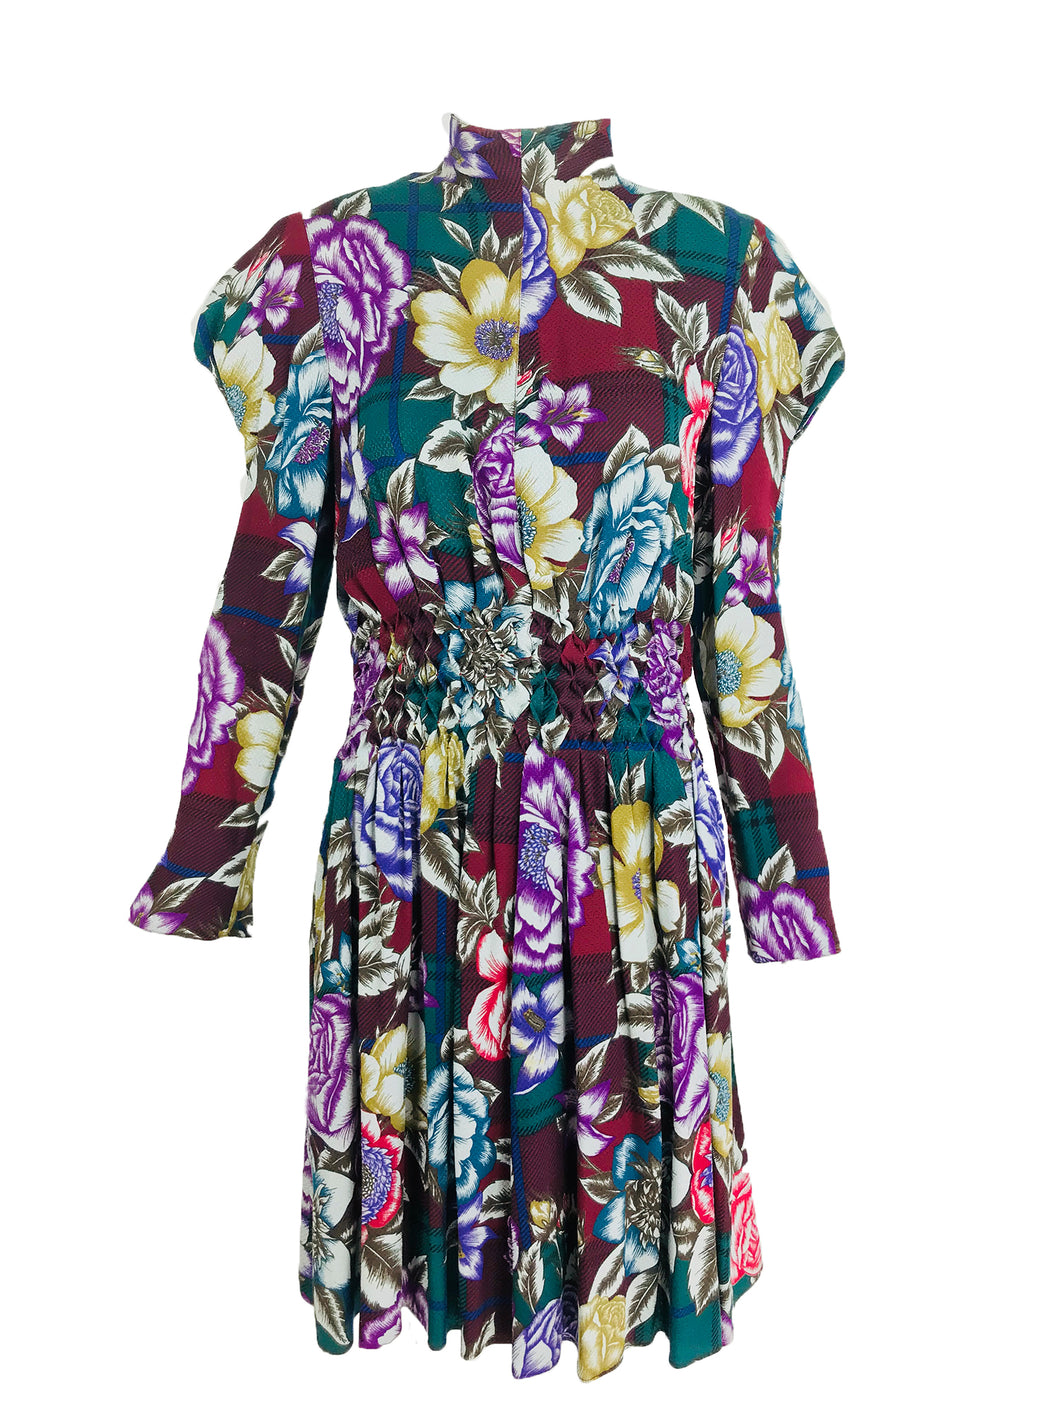 Christian Lacroix Foral Silk Smocked Waist Dress 1990s